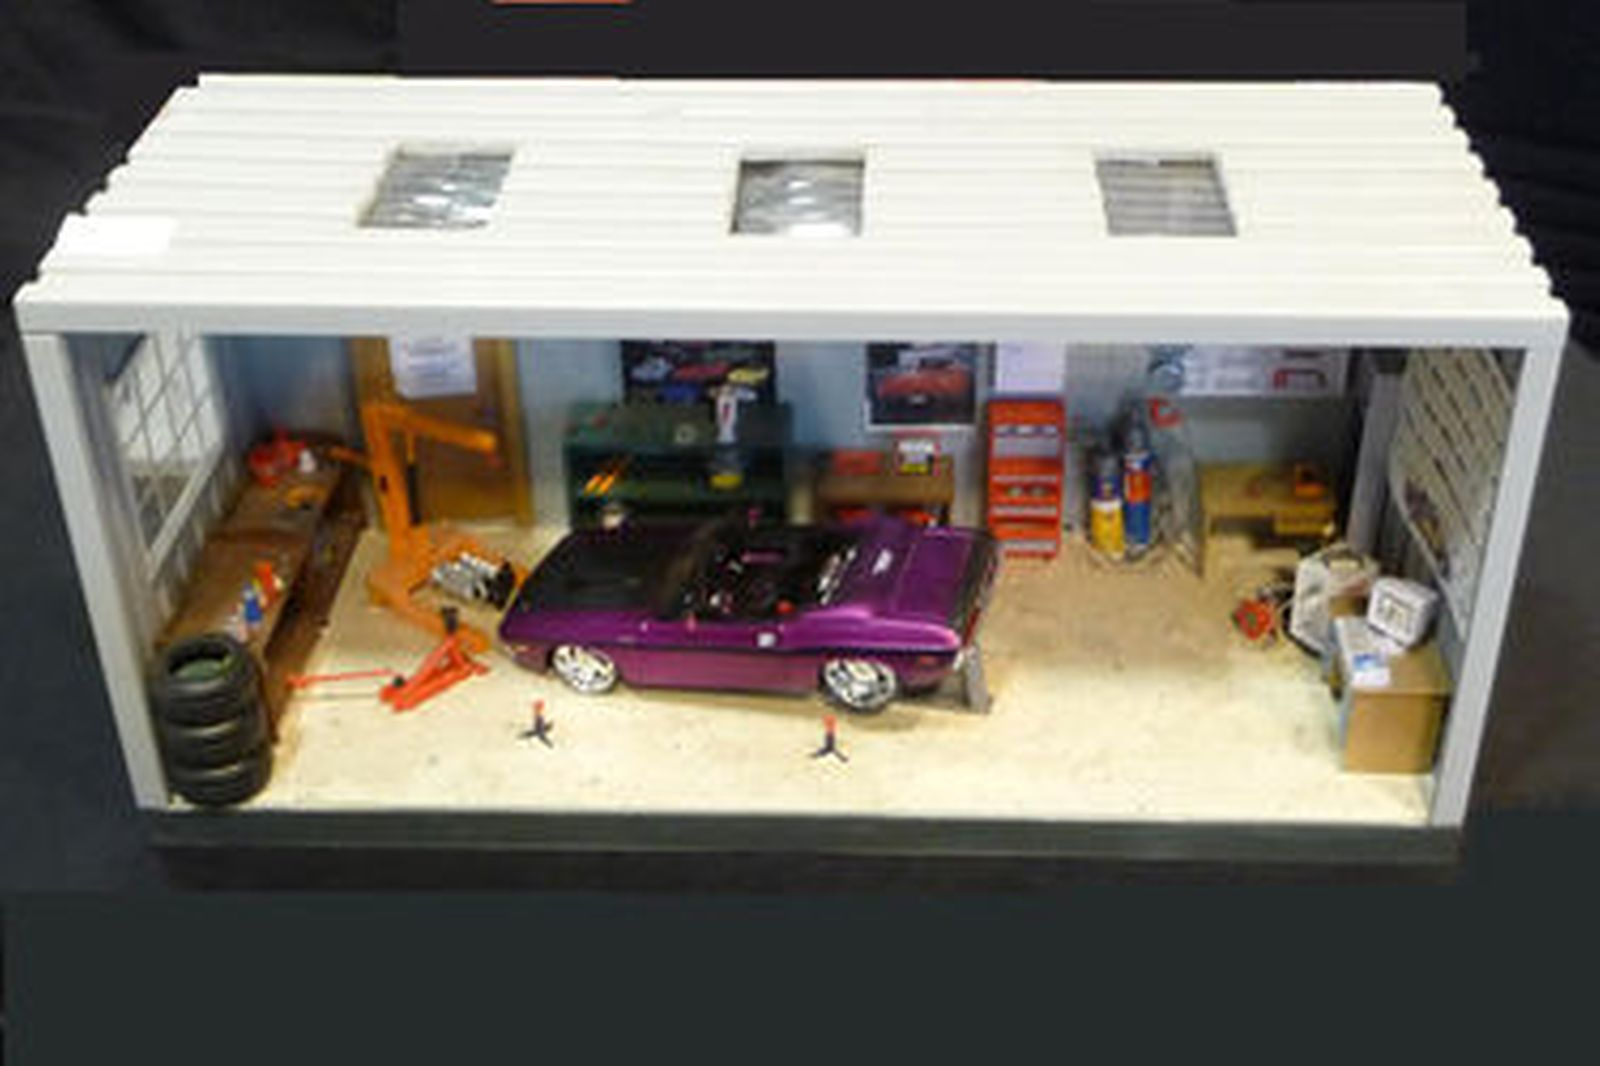 Online Car Auction >> Sold: Building Models - Speed Shop Diorama and Garage Diorama and six cars Auctions - Lot A ...